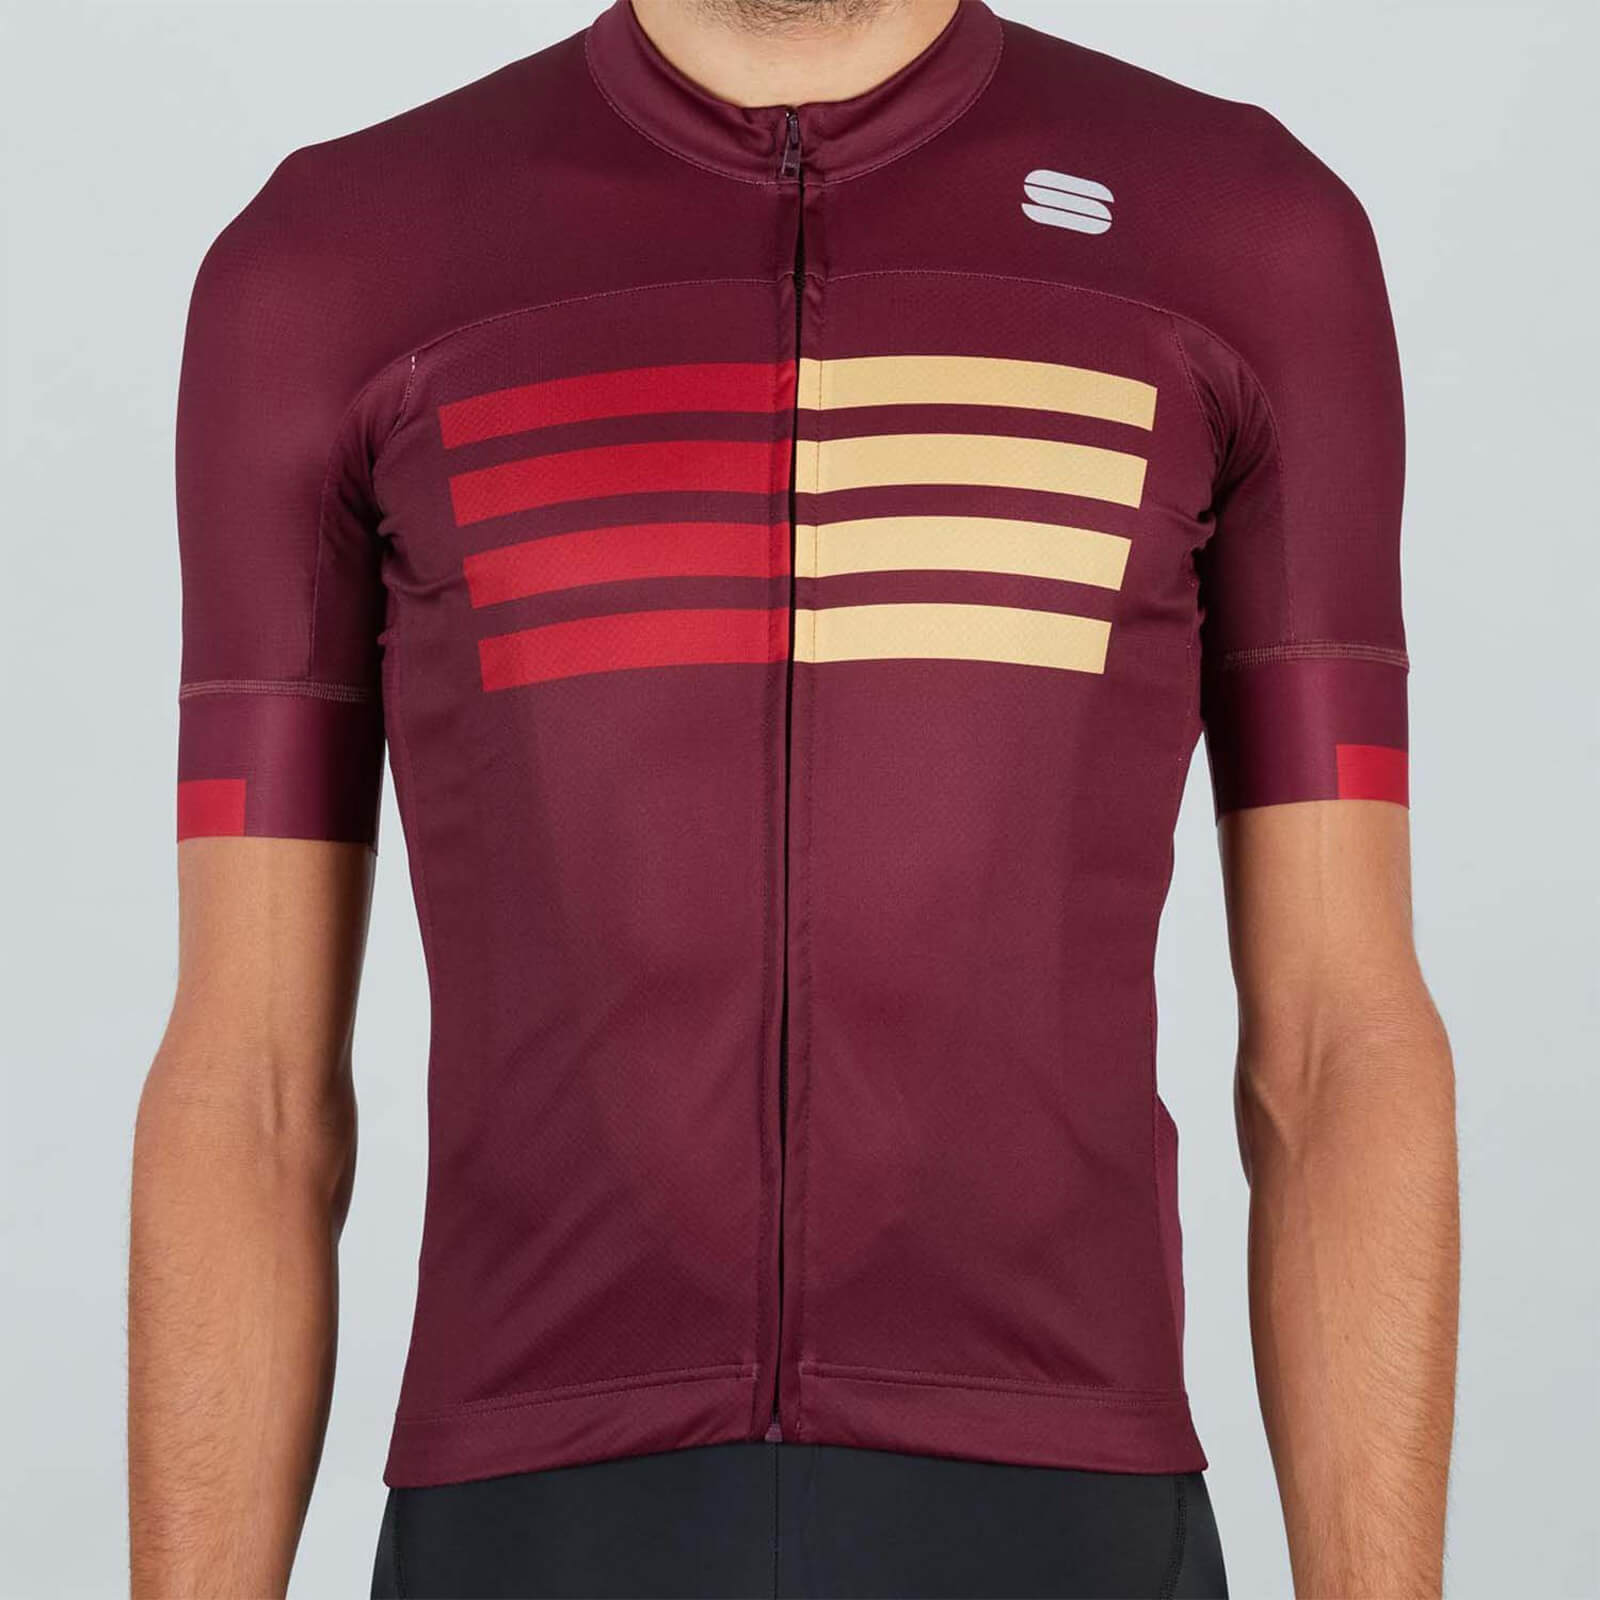 Sportful Wire Jersey - S - Red Wine/Red Rumba/Gold